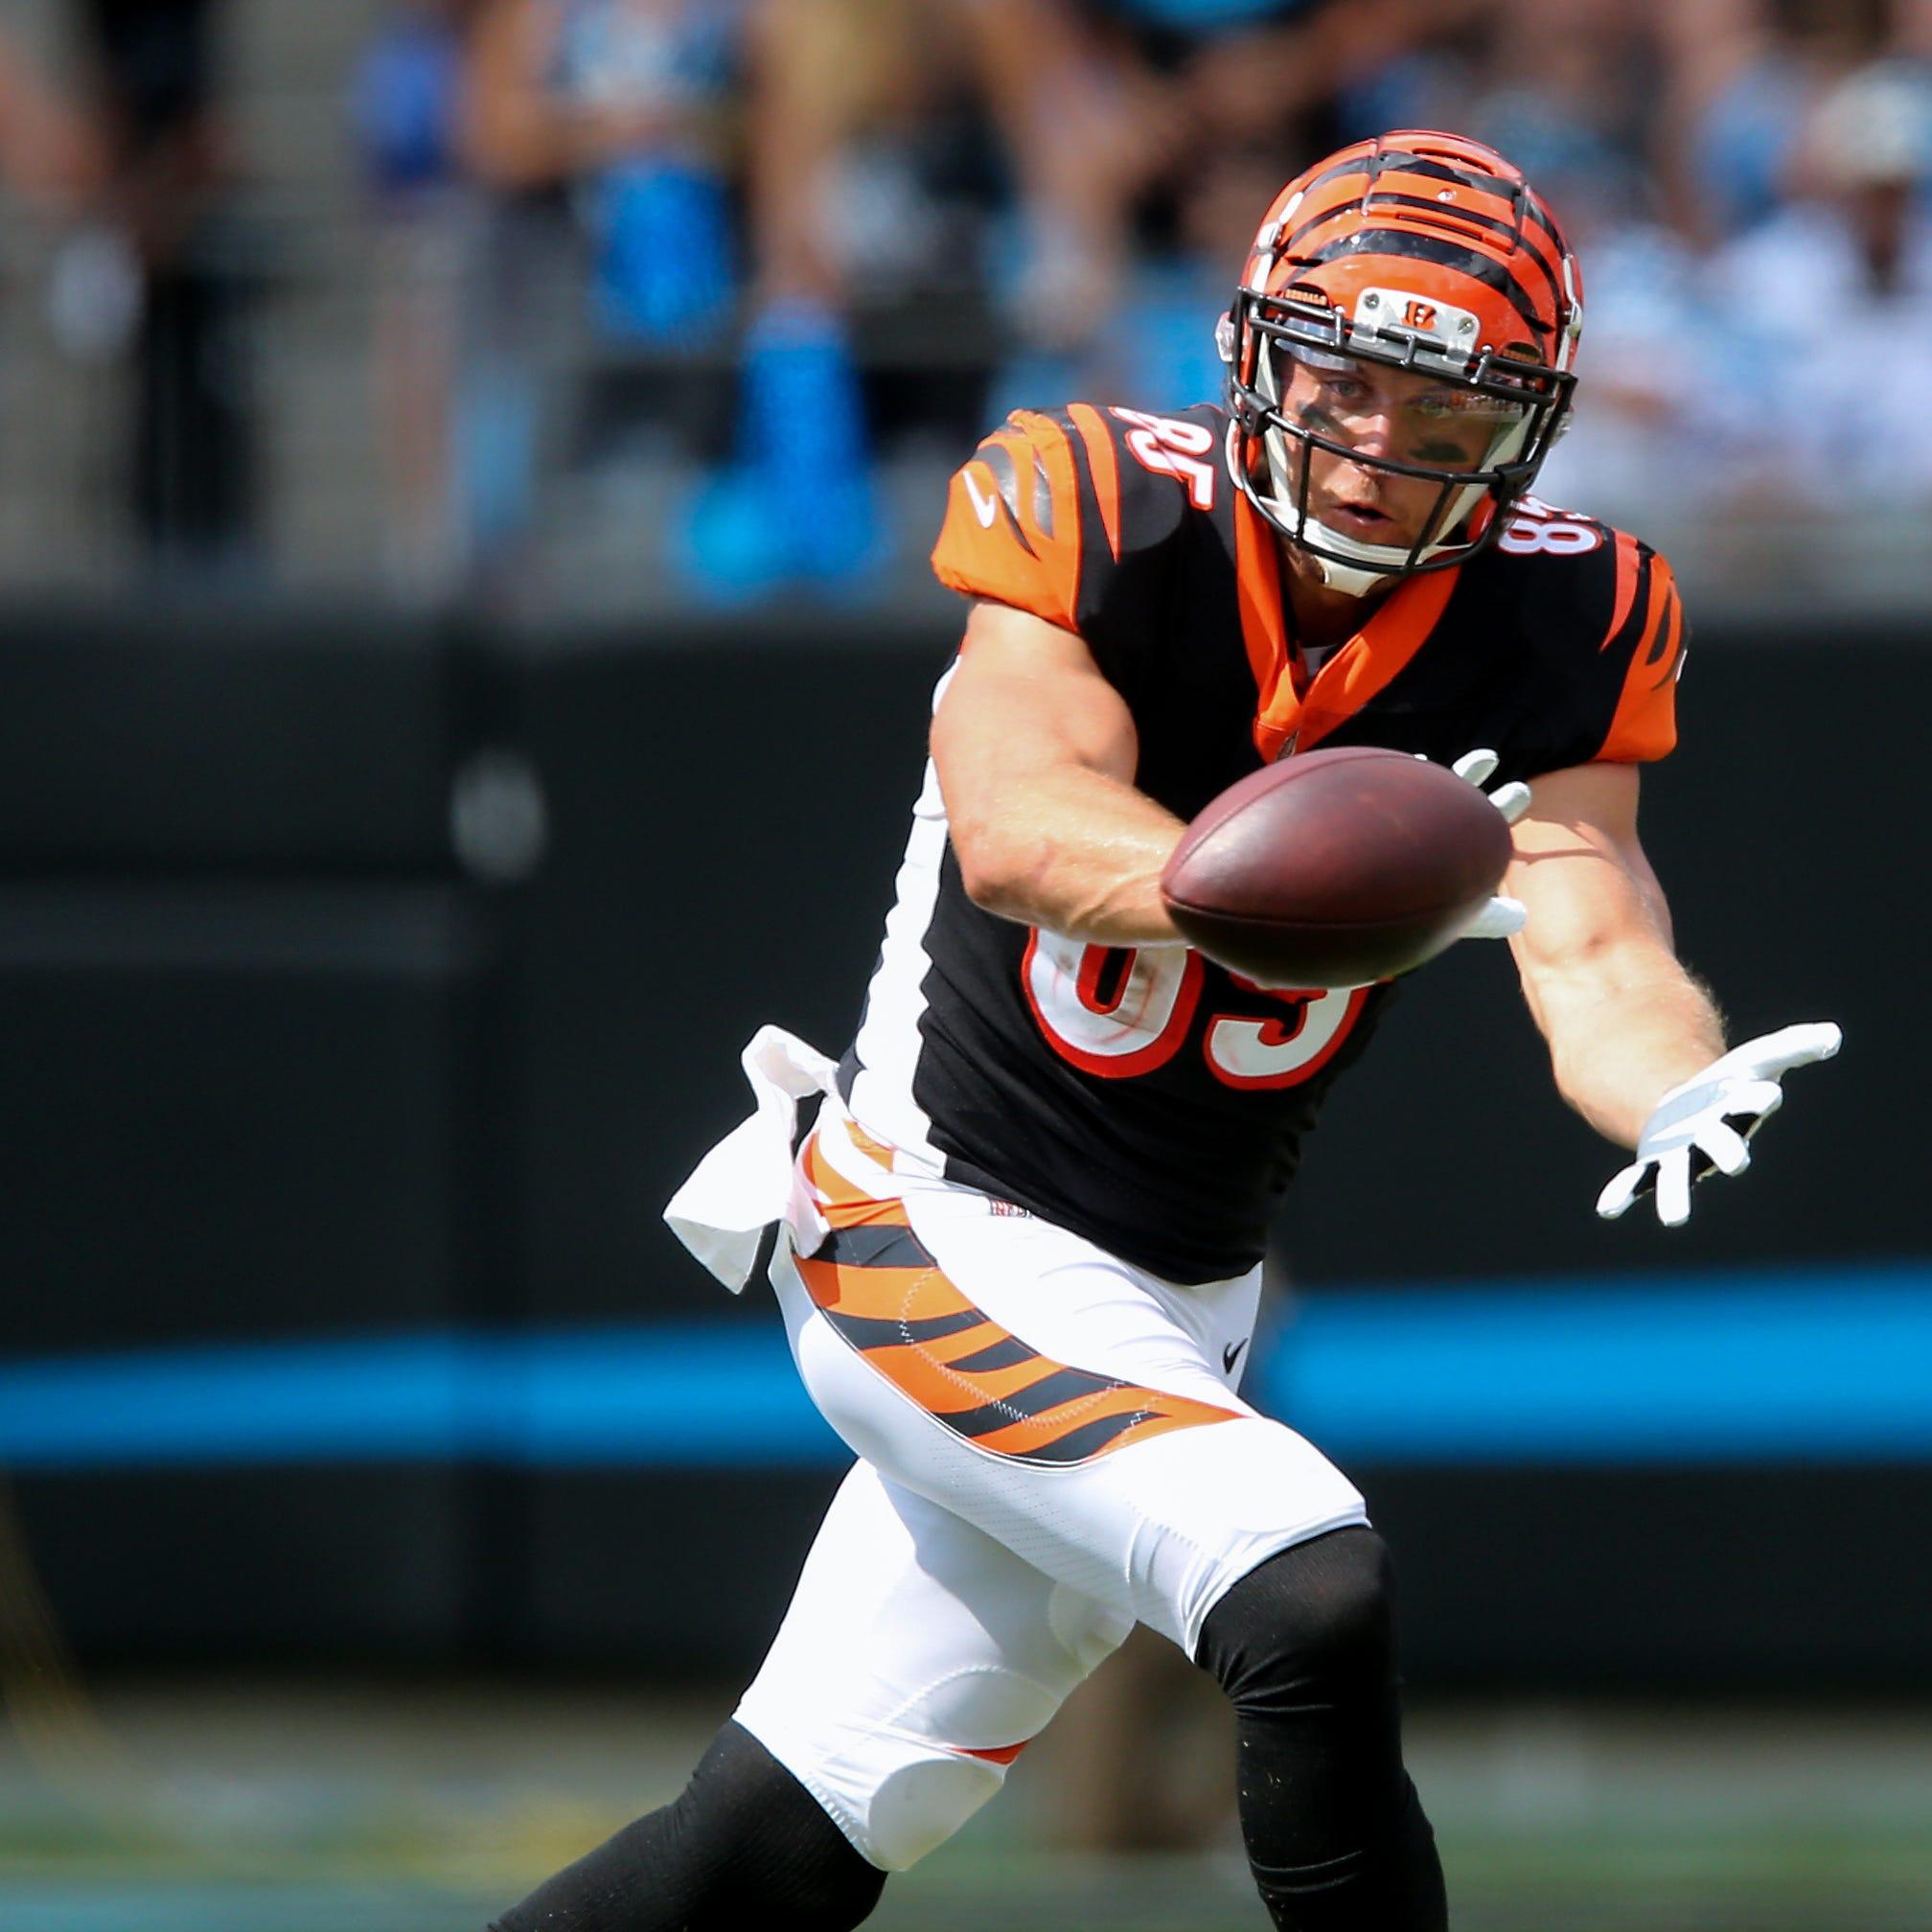 Cincinnati Bengals re-sign free agent tight end Tyler Eifert